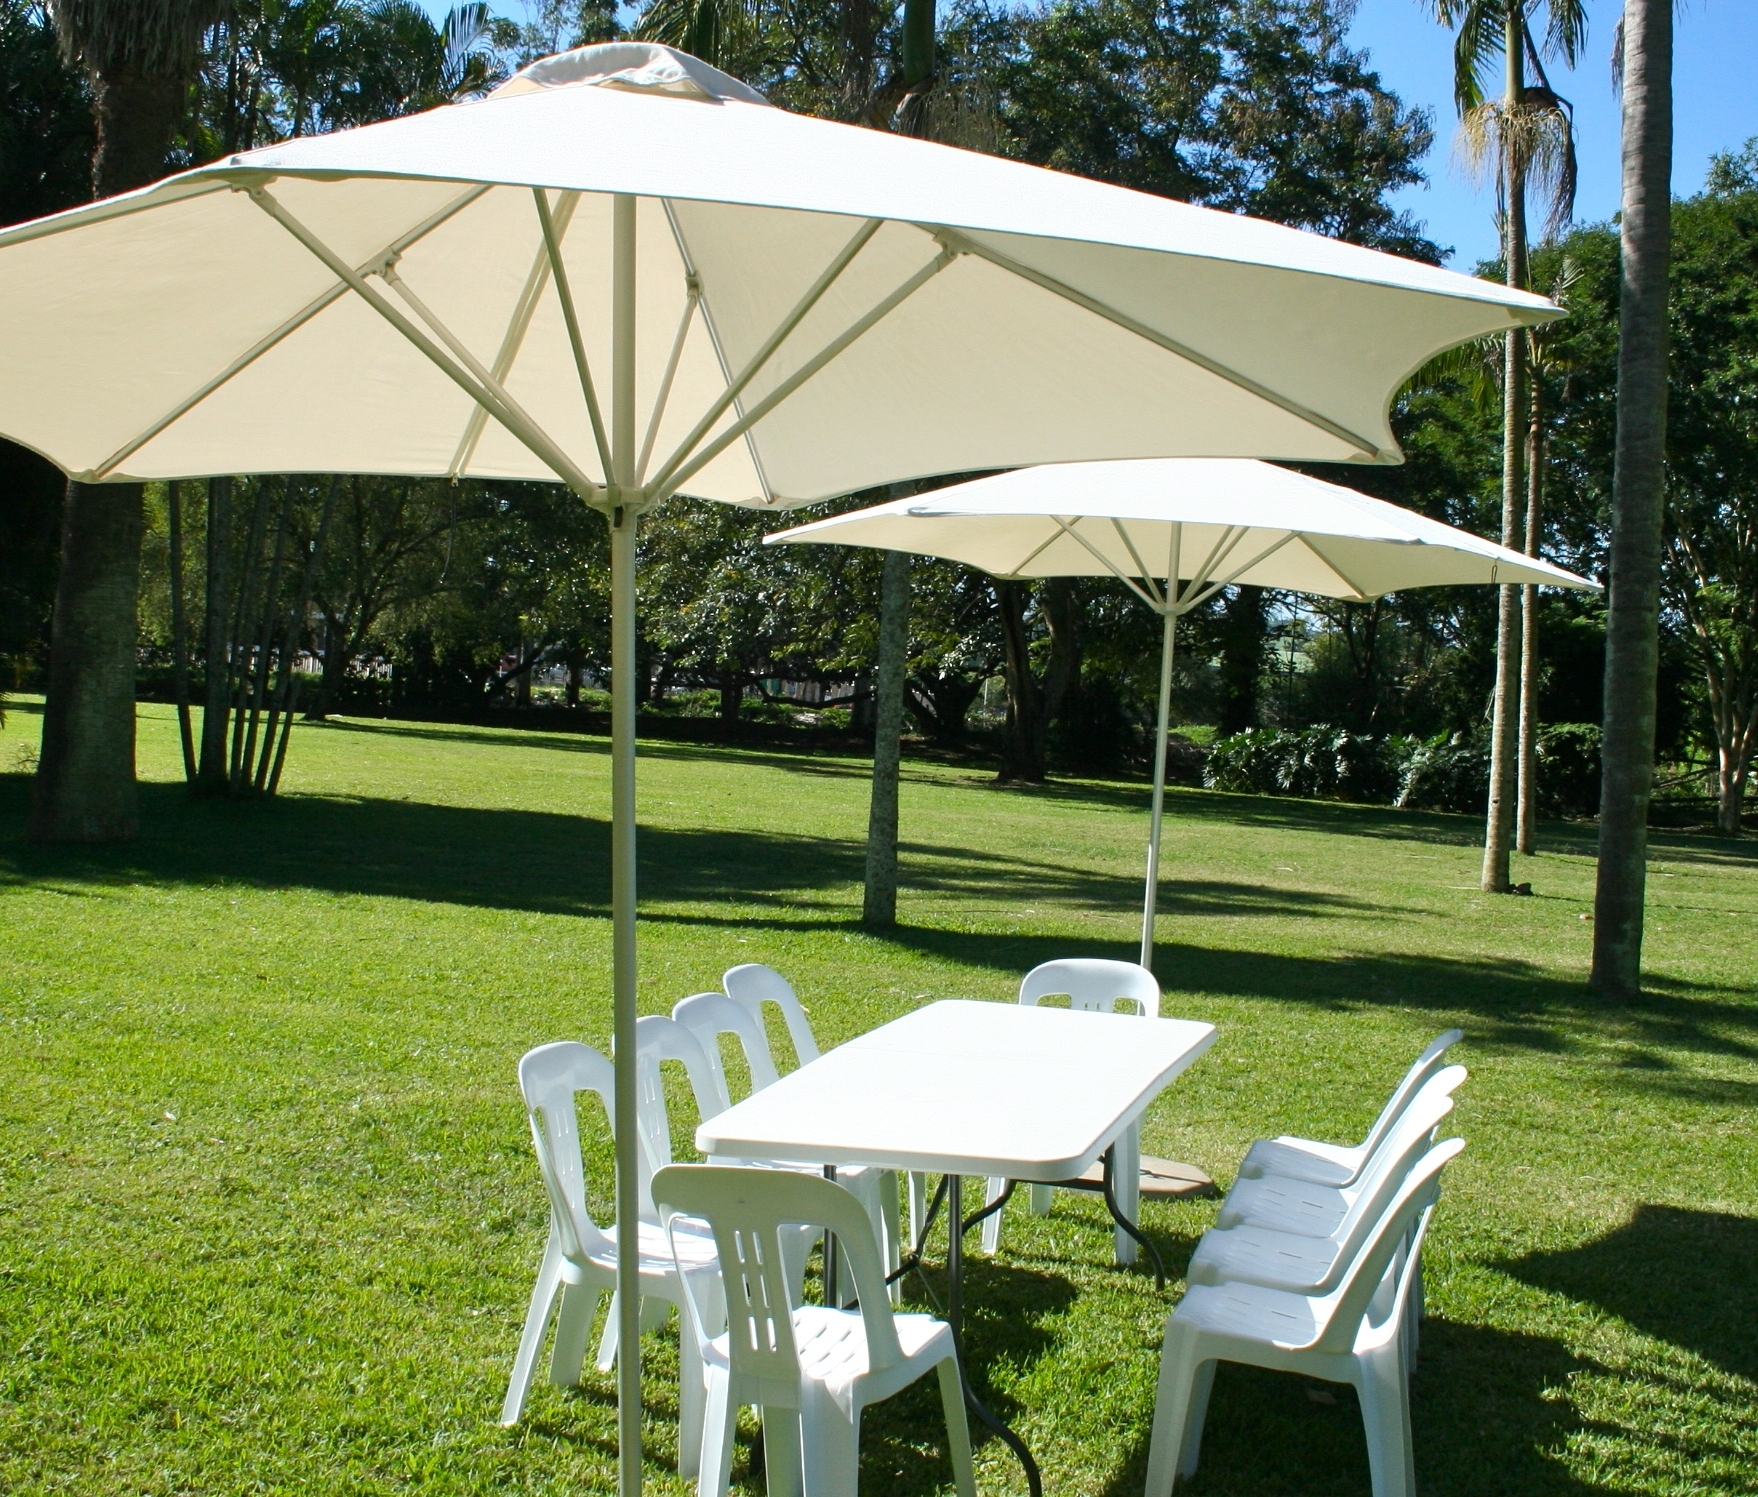 Outdoor Patio Umbrellas With Regard To Well Liked Outdoor Patio Umbrella Rental Umbrella Hire (View 12 of 20)